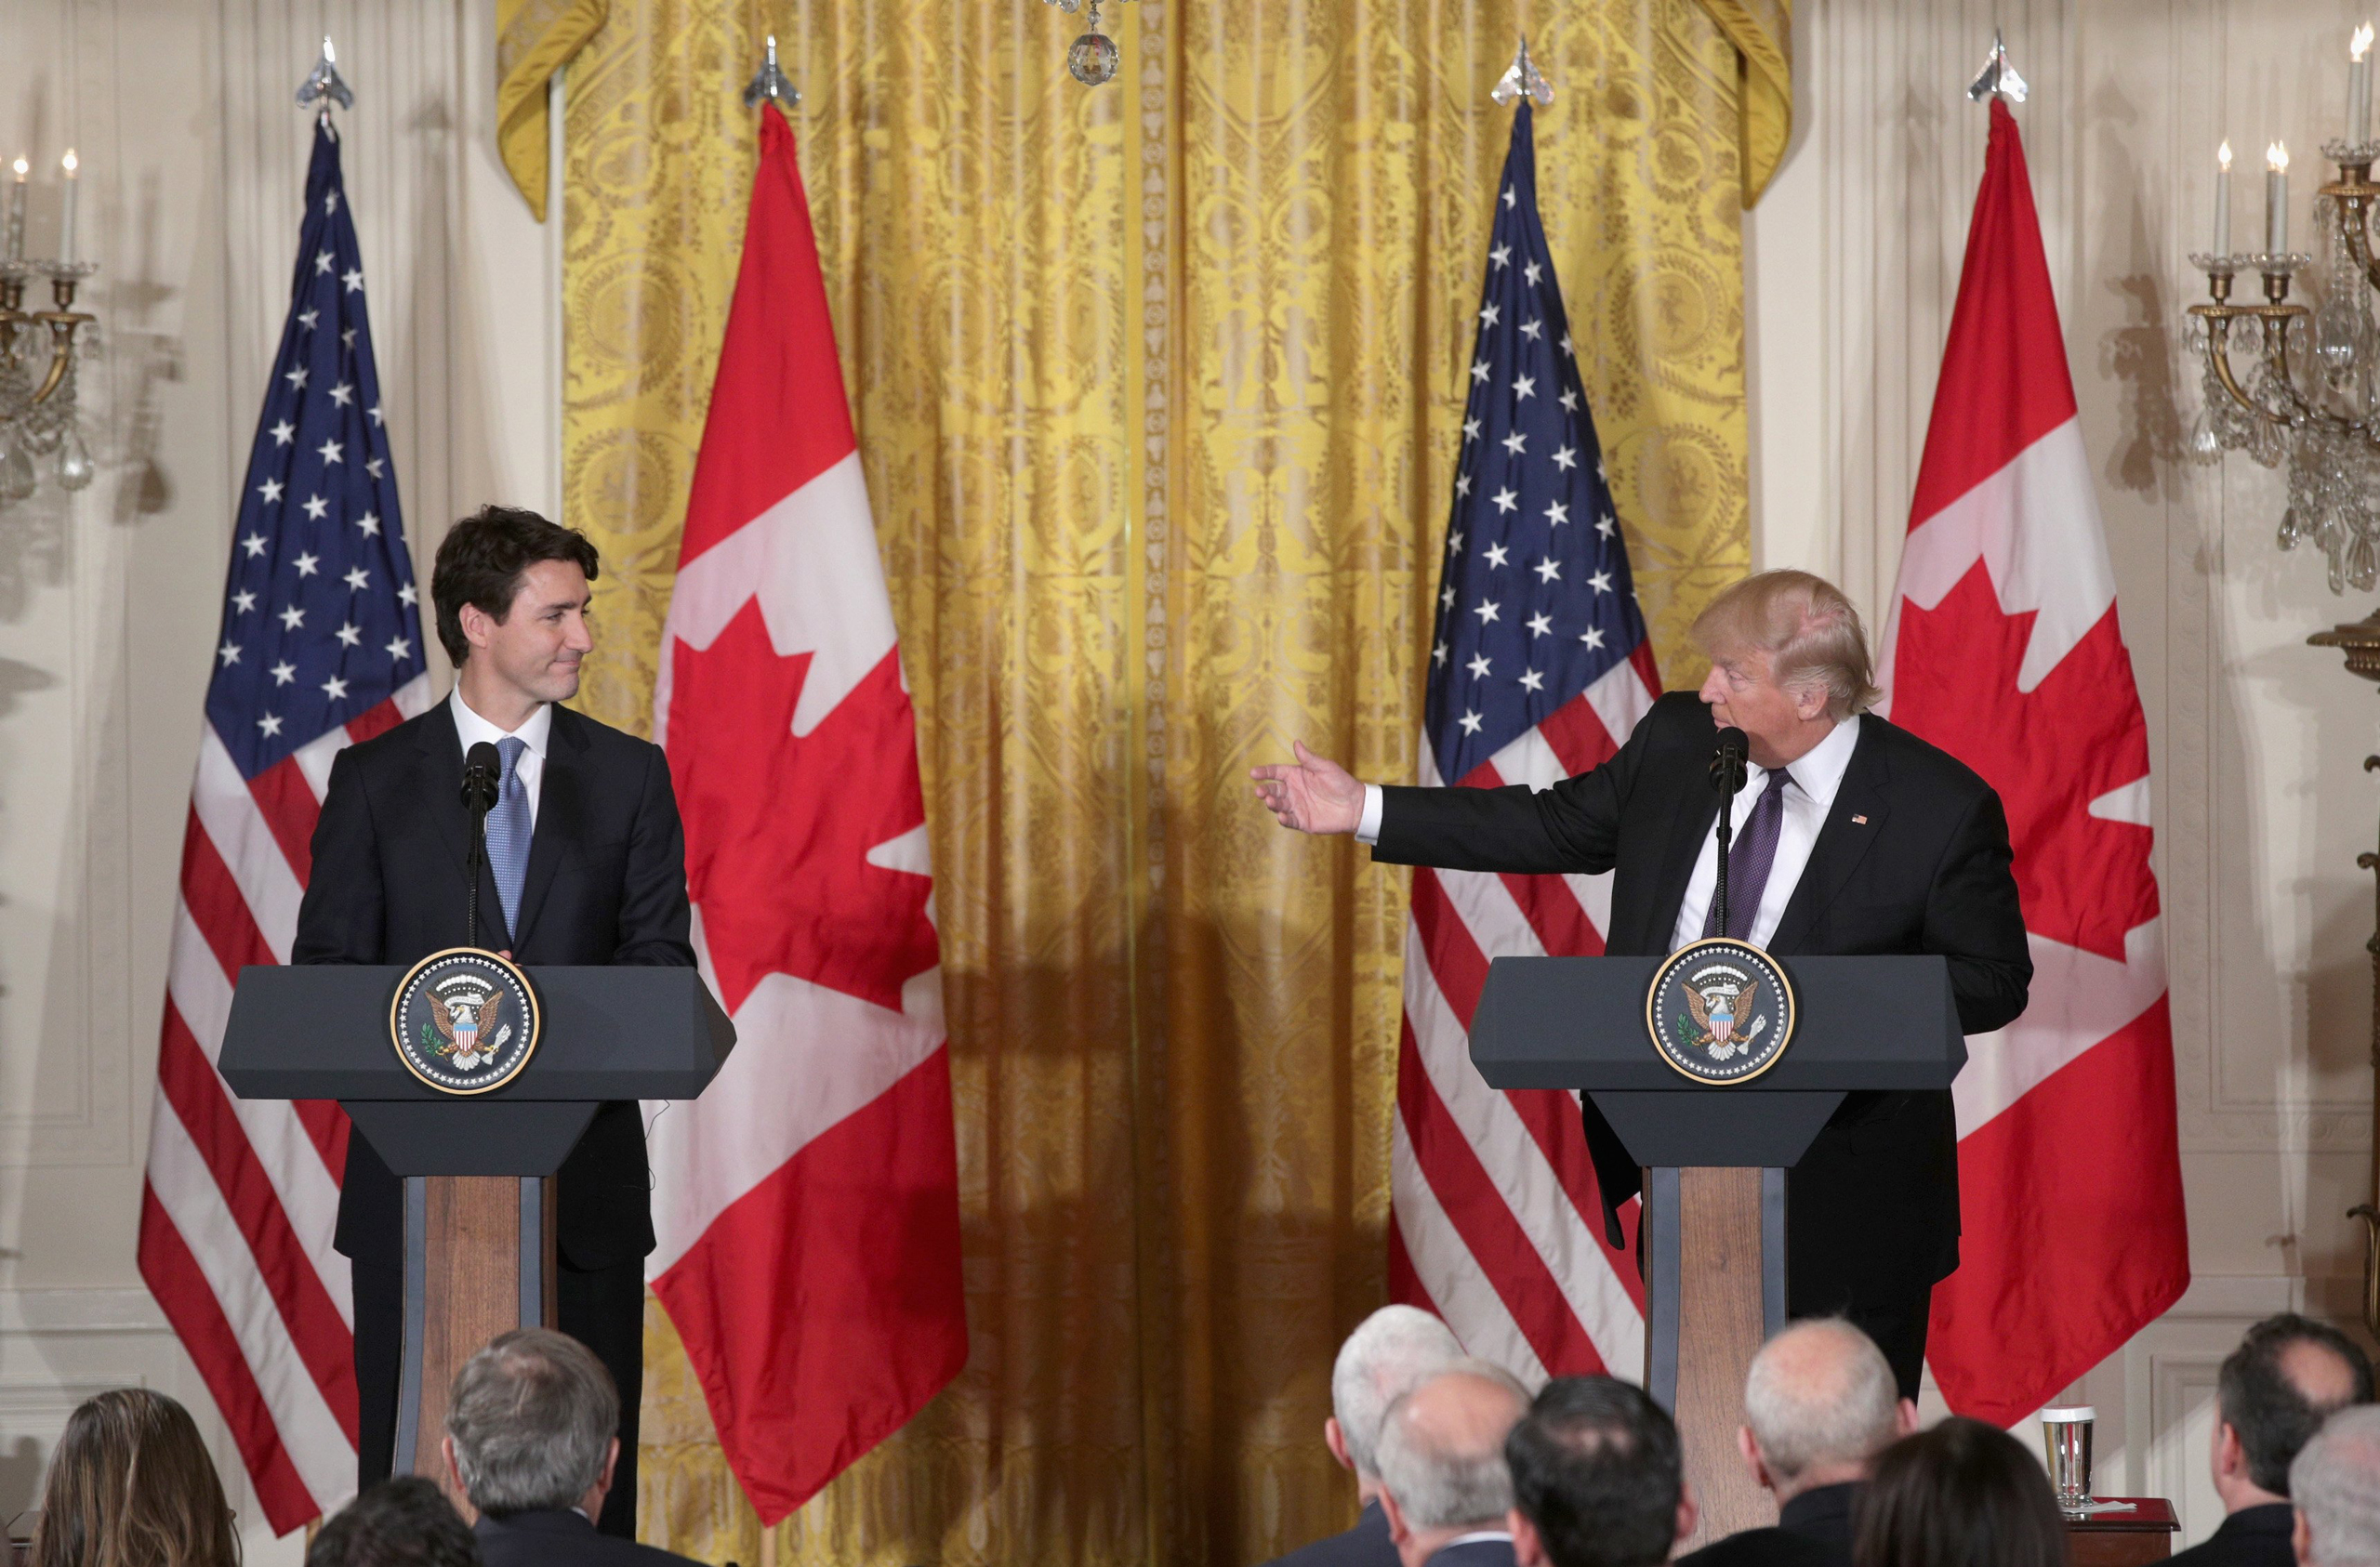 President Donald Trump and Canadian Prime Minister Justin Trudeau participate in a joint news conference in the East Room of the White House in Washington on Feb. 13, 2017.